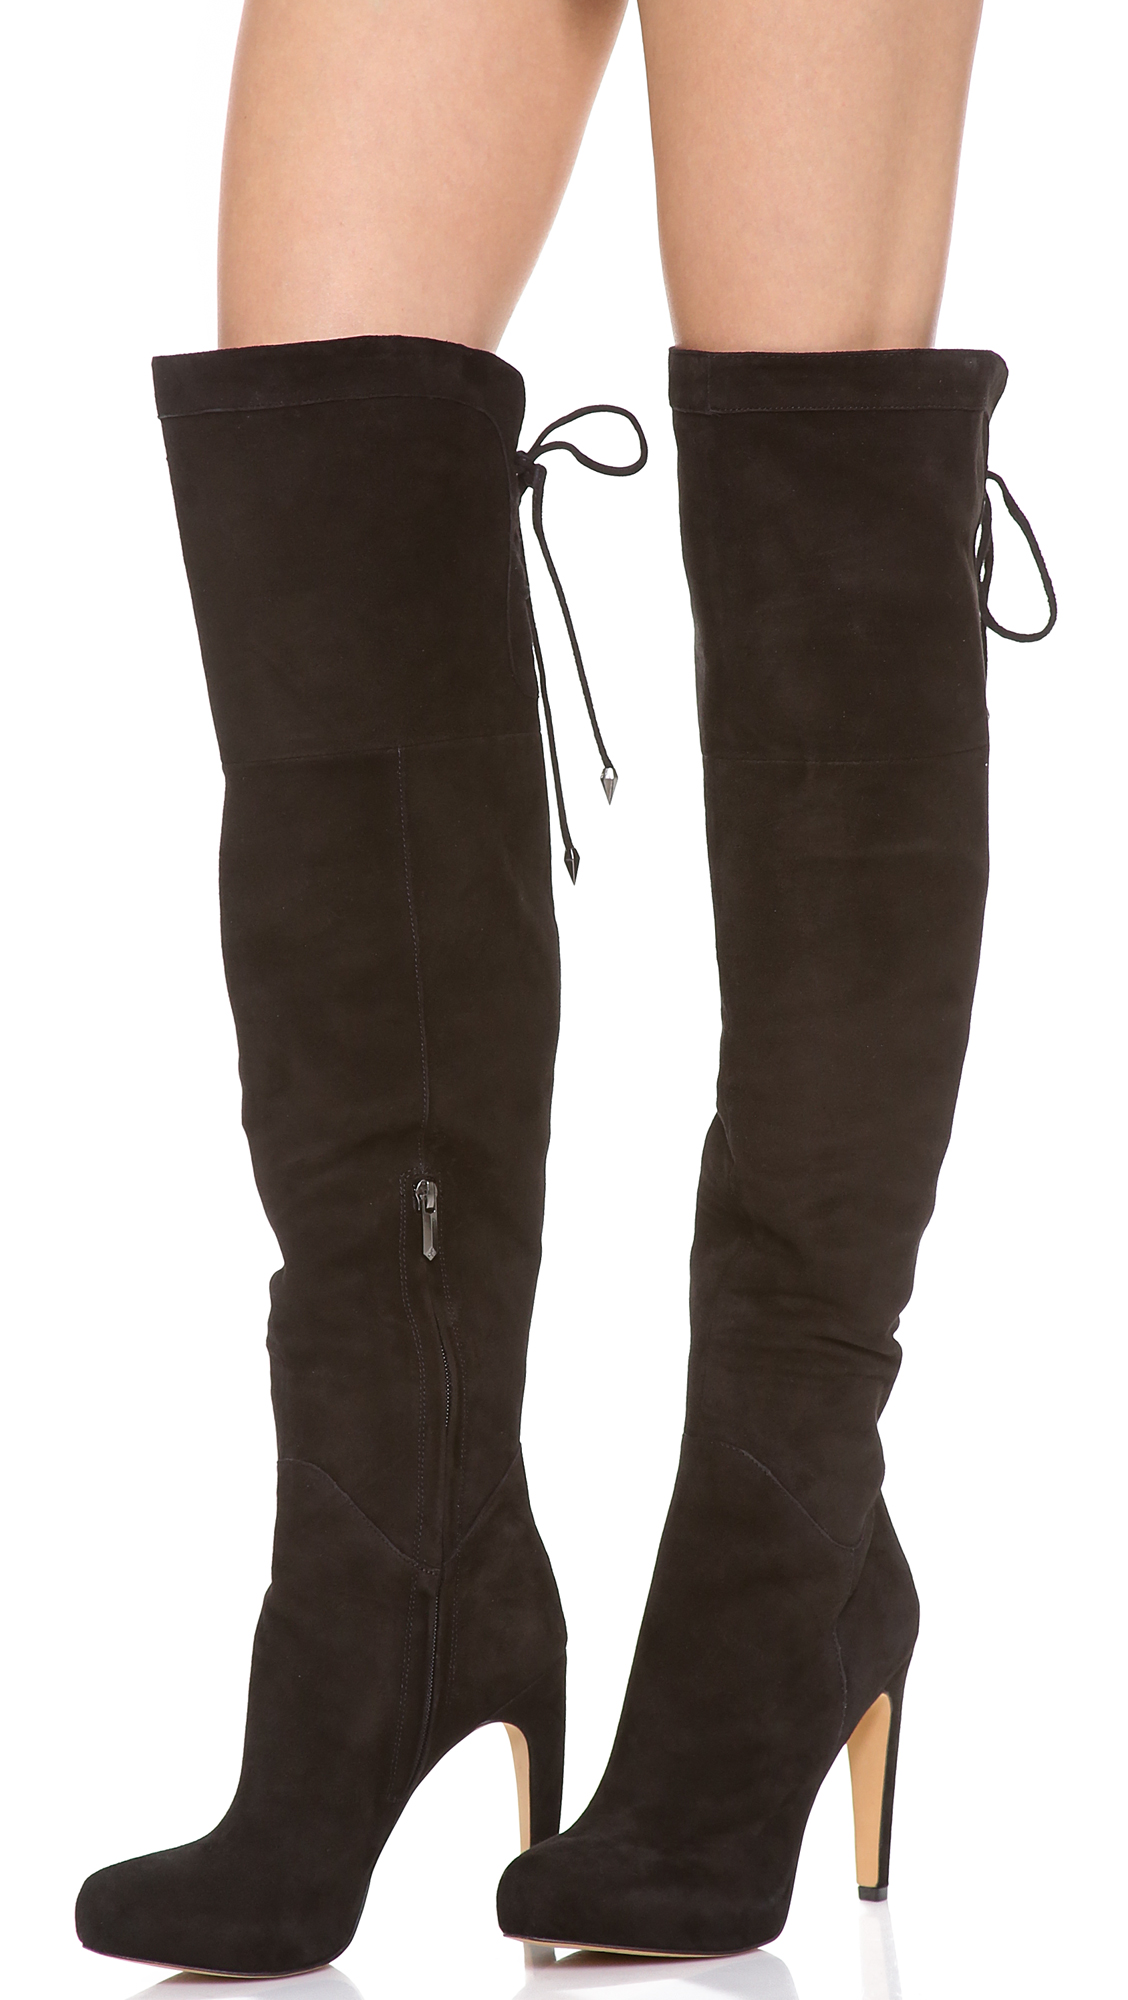 Sam edelman Kayla Over The Knee Boots in Black | Lyst